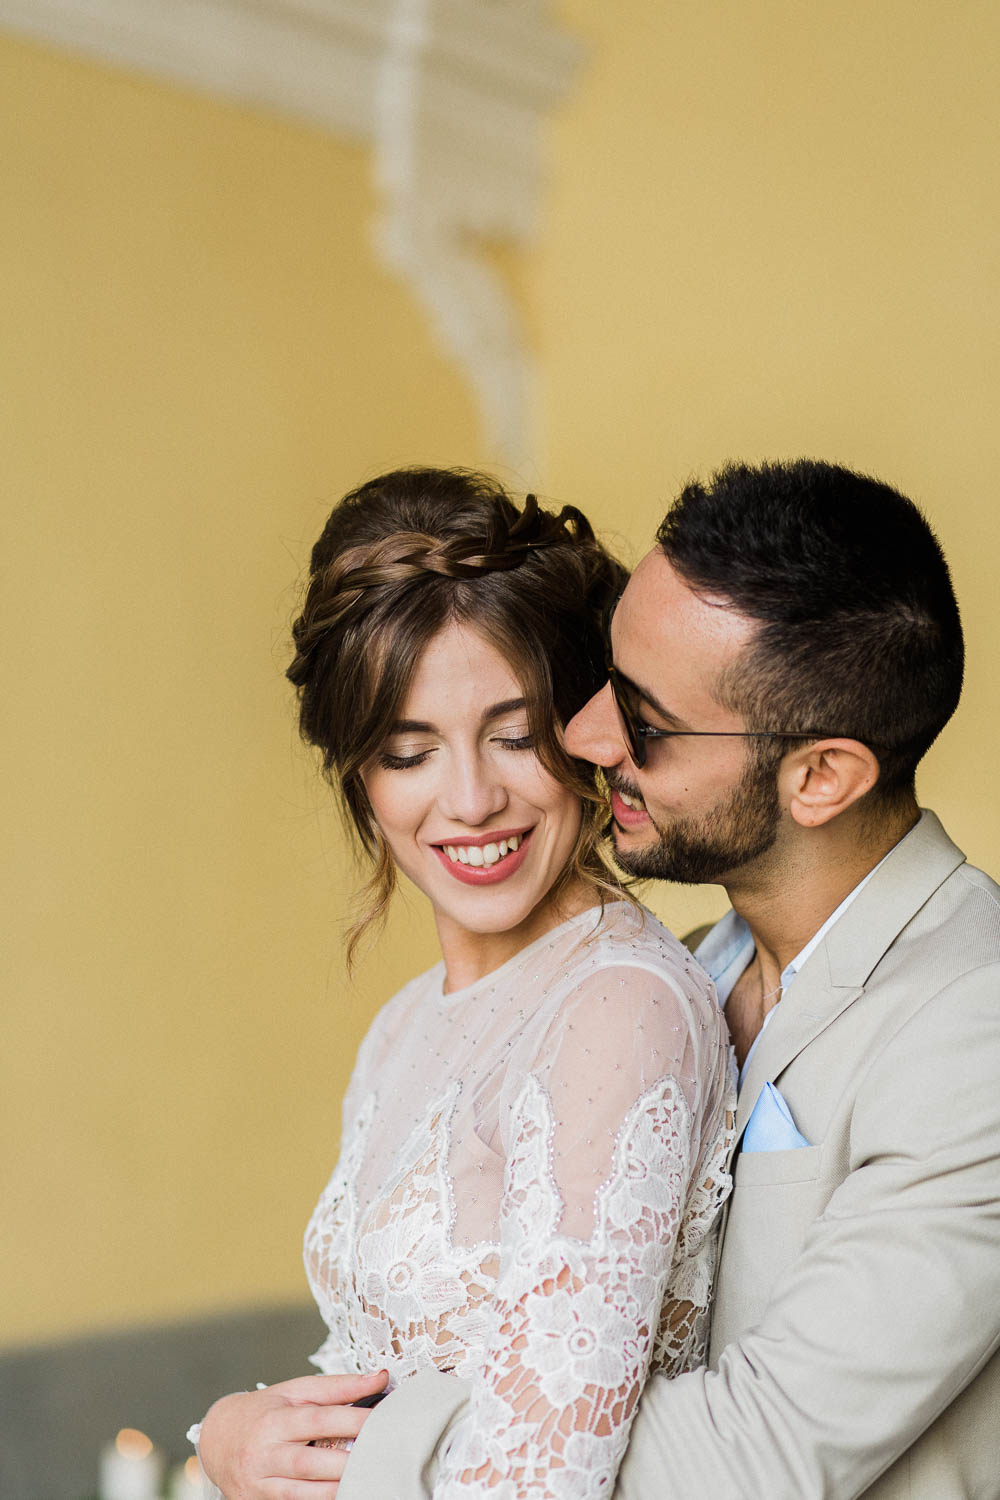 castellabate italy wedding photography-7.jpg